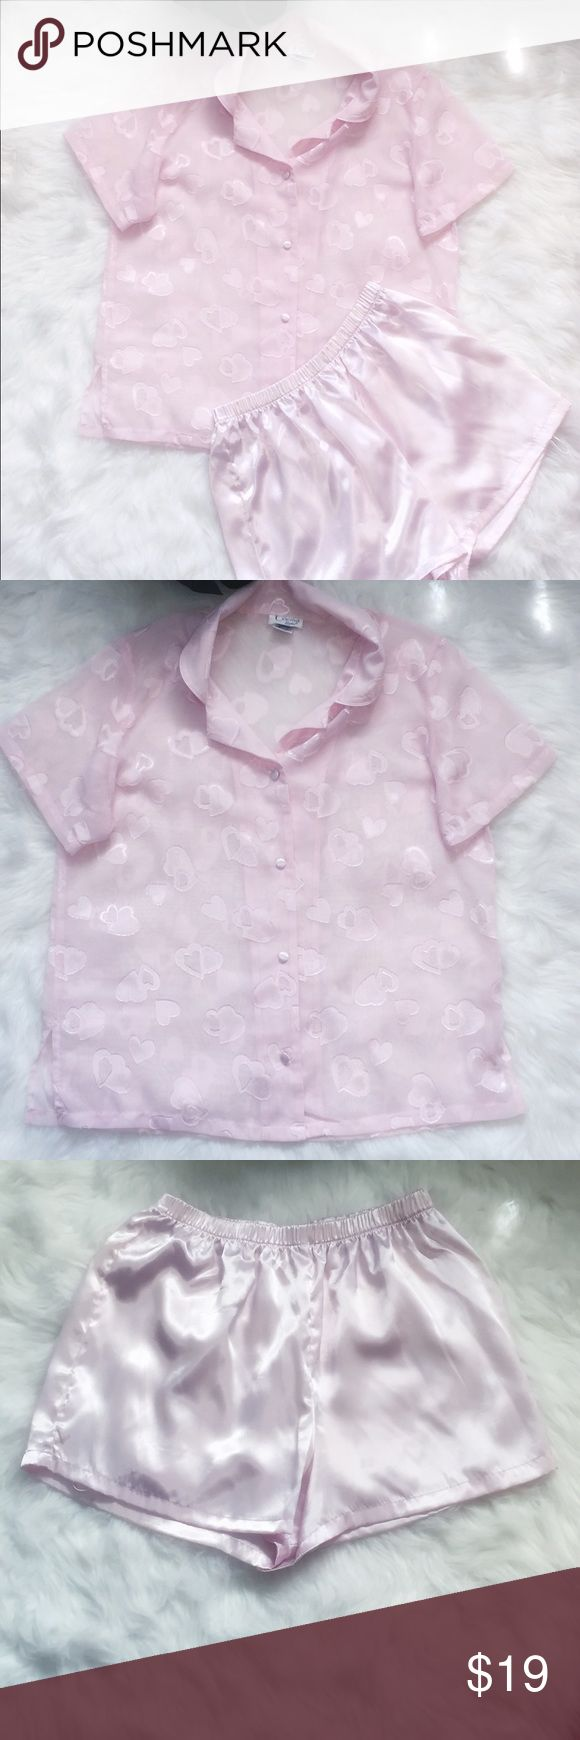 ⬇️Price Drop⬇️ Cinema Etoile Pink Pajama Set Baby Pink Pajama Set. Polyester. Machine washable. No visible flaws. Worn once. Size M Intimates & Sleepwear Pajamas